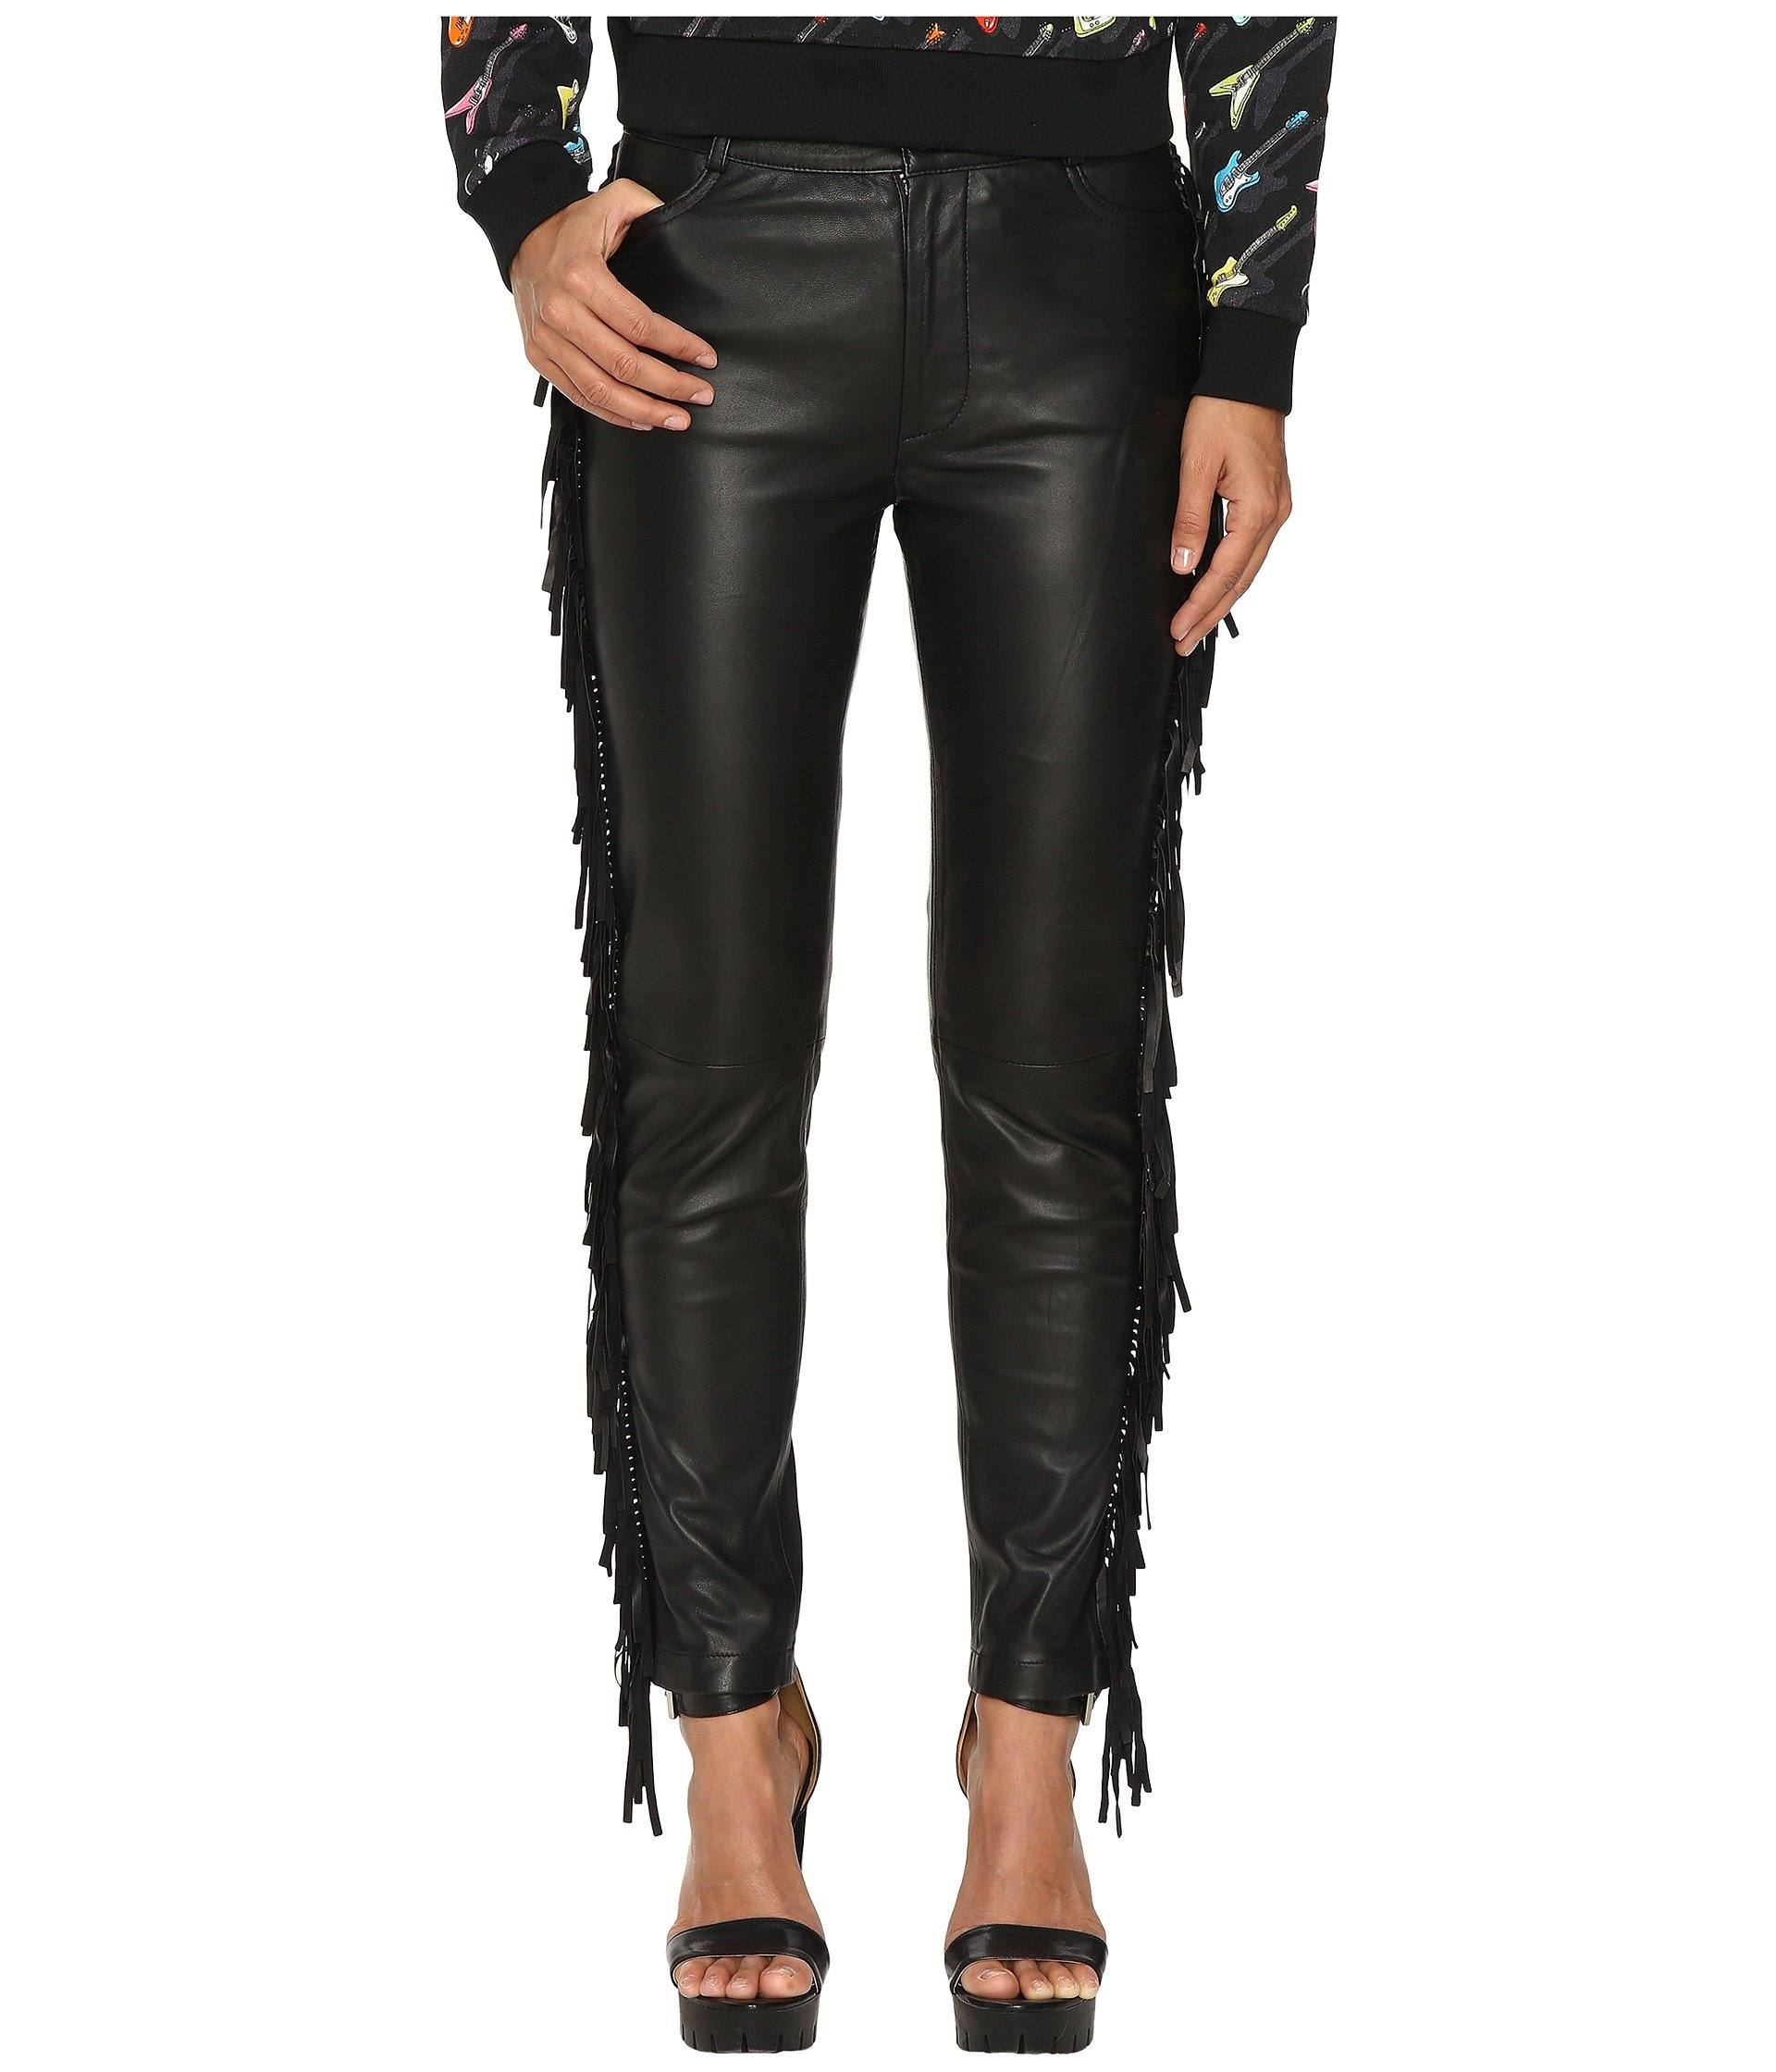 Fringed Leather Pants